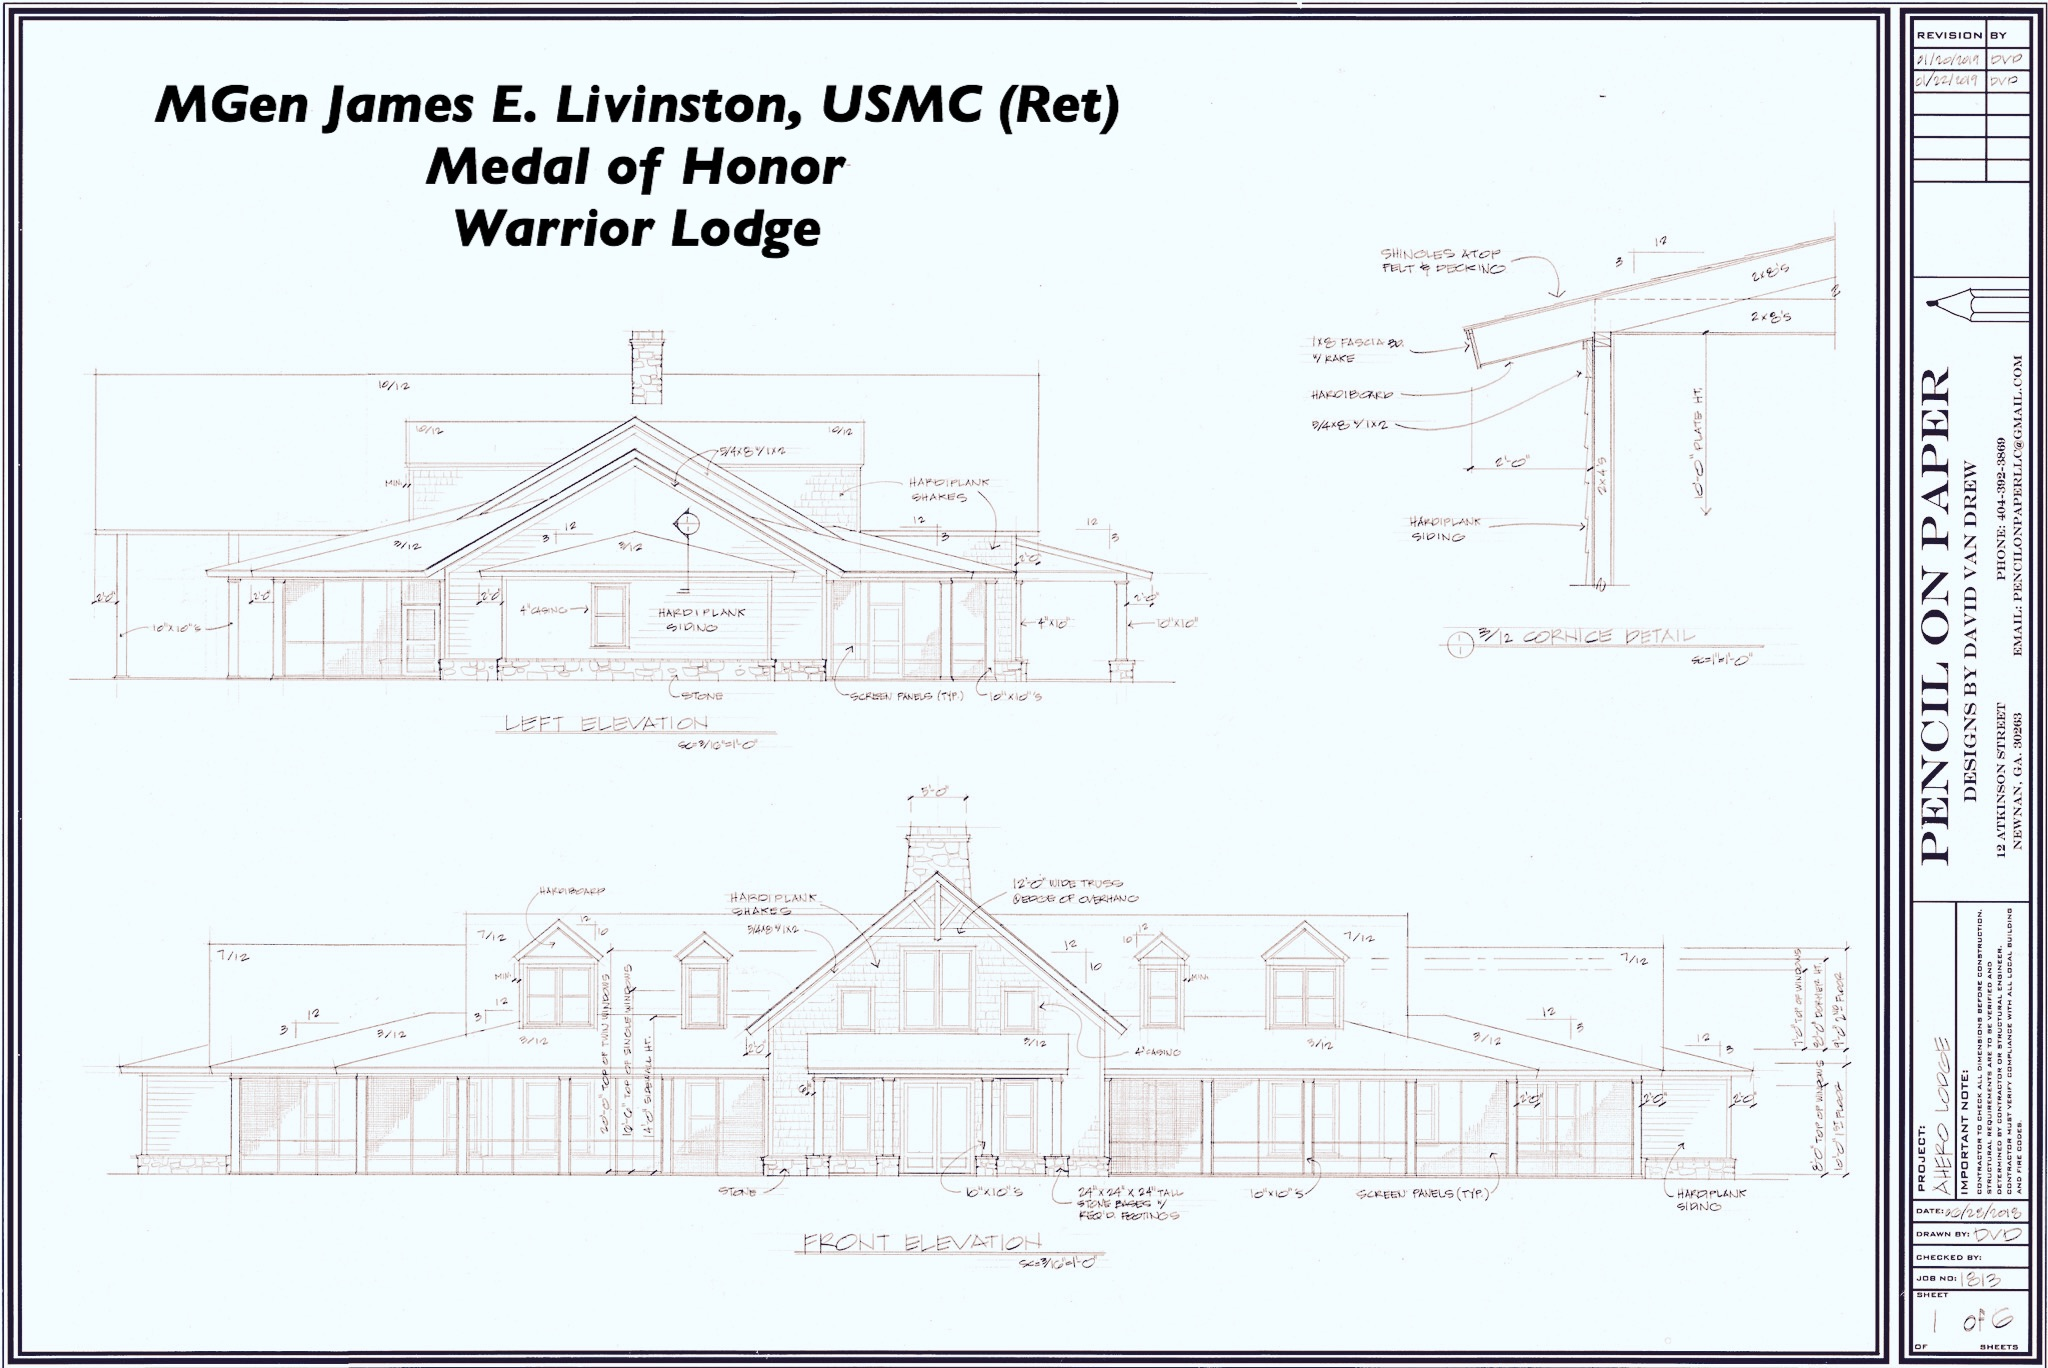 Coming Soon: The AHERO Warrior Lodge